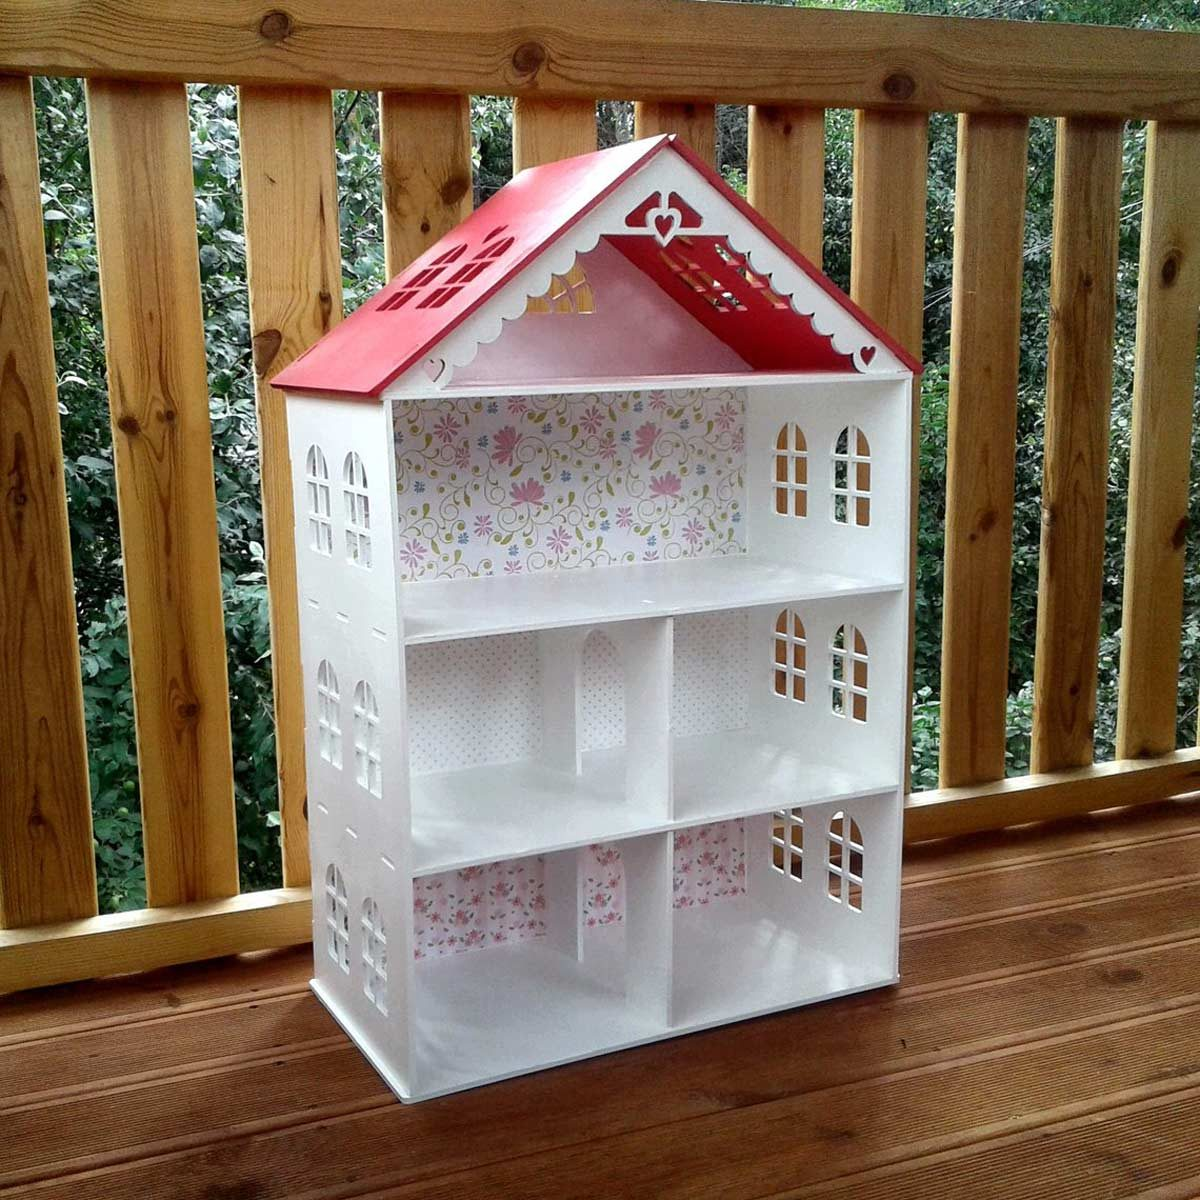 10 Homemade Barbie Houses You Wish You Lived In Family